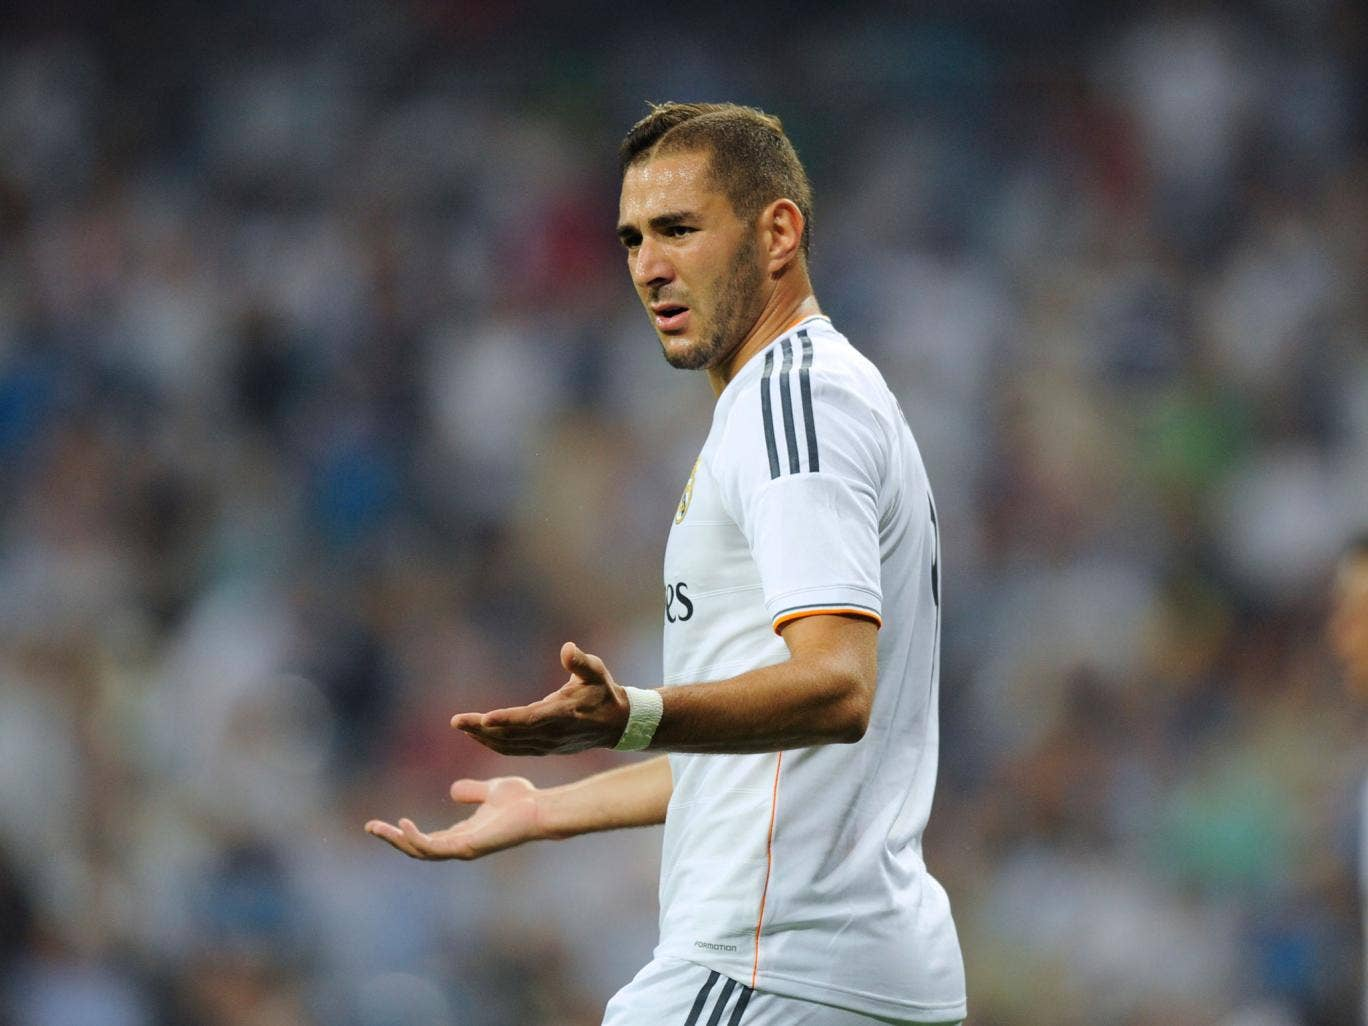 Karim Benzema could be the subject of a bid from Arsenal